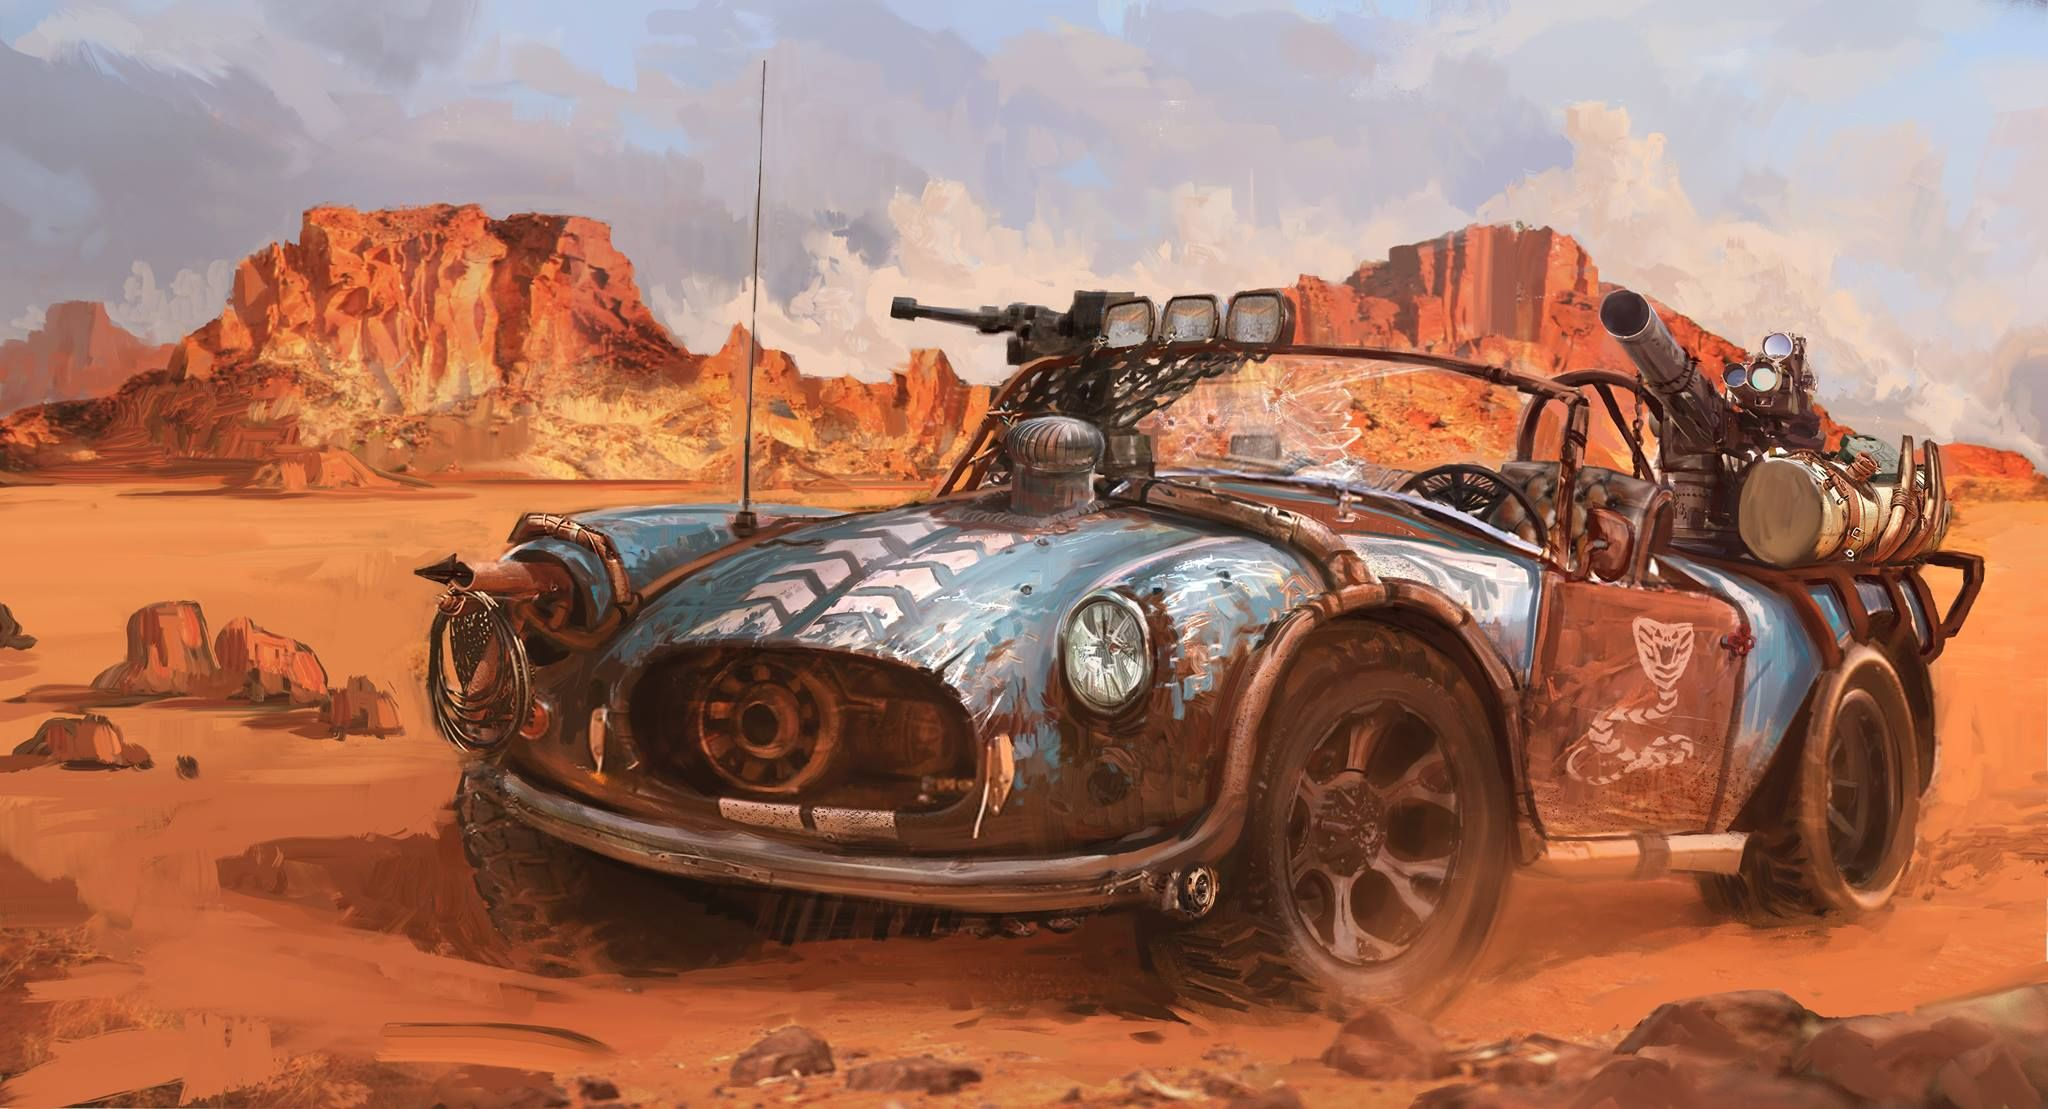 Pin By Aaron On Environment Concept Art Car Artwork Car Wallpapers Hybrid Car